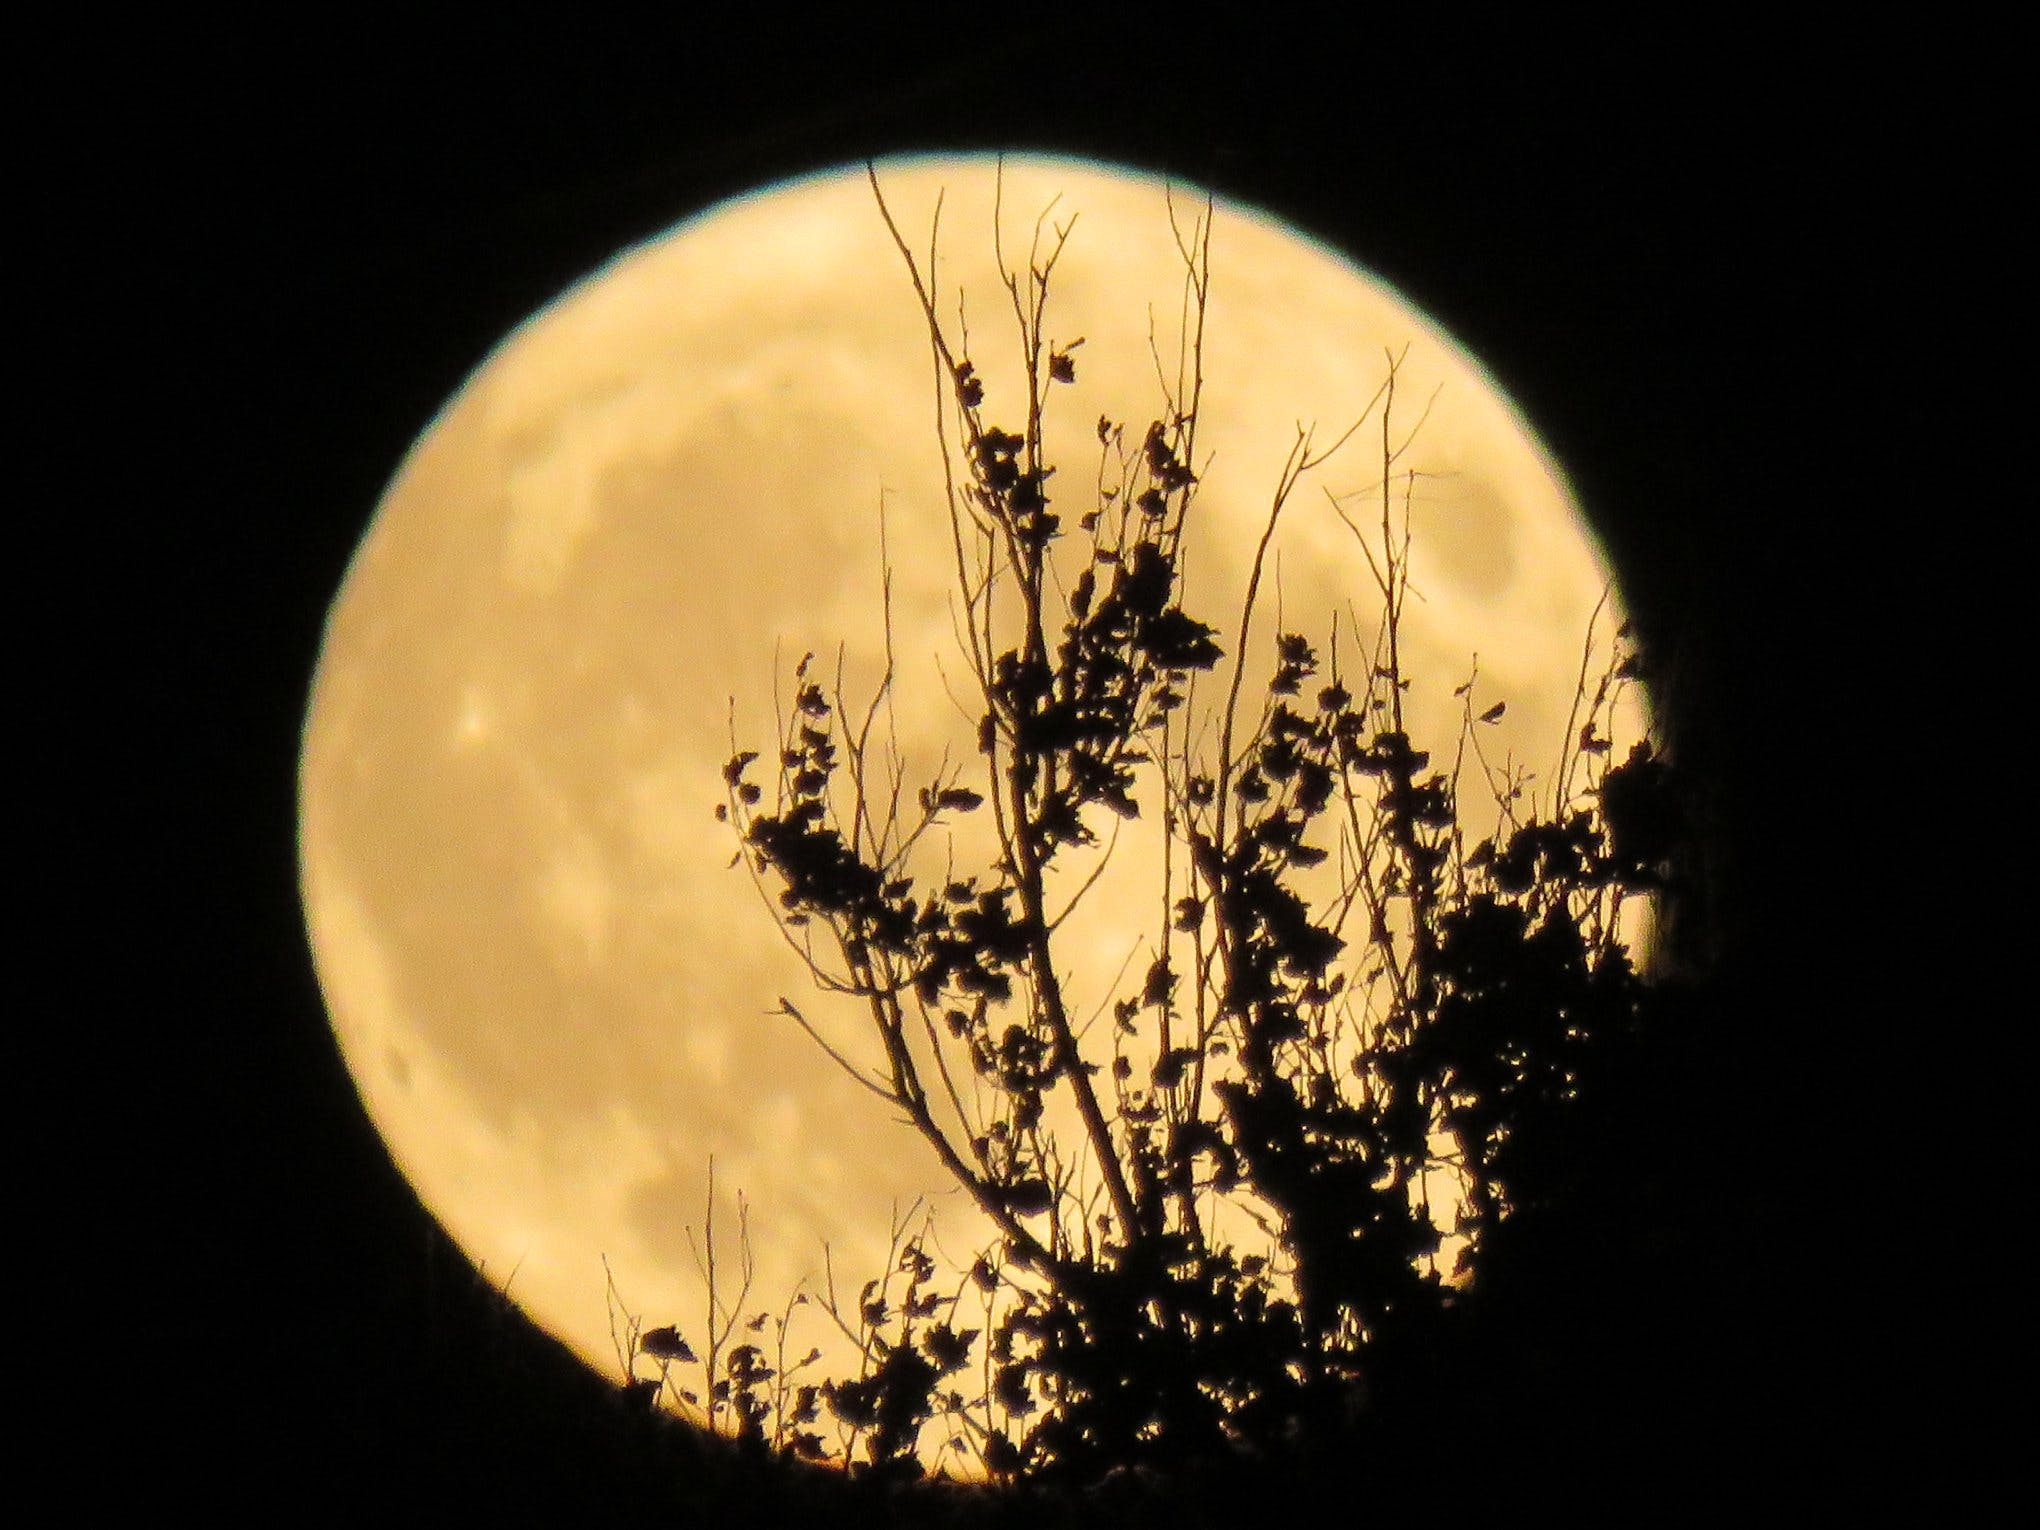 At 1:33 ADT (2:03 NDT) Saturday a.m., the September moon became the Full Harvest Moon. Corinne Reid took this stunning photo just hours before that, as Earth's only natural satellite came up over Dominion Cape Breton N.S. The Harvest Moon is the full moon closest to the fall equinox;  some years, the full moon in October gets the honours of being called the Harvest Moon.